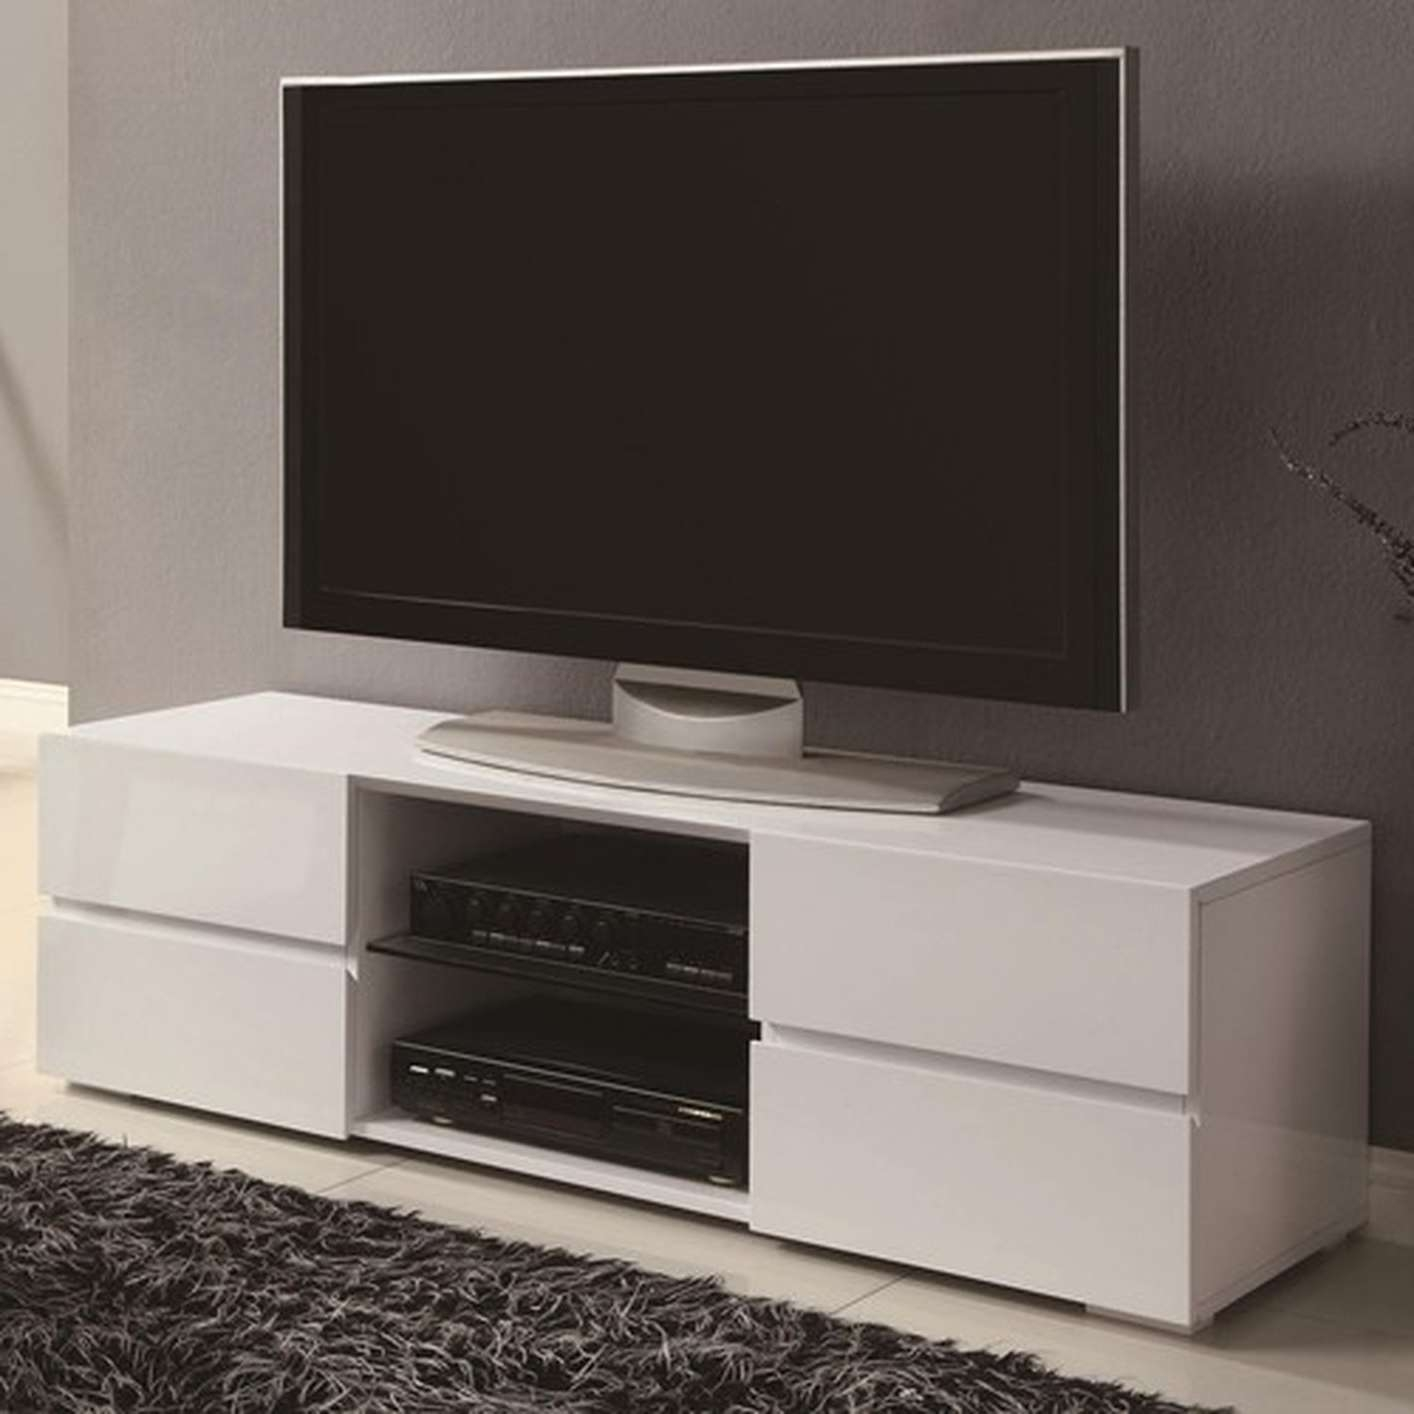 White Wood Tv Stand – Steal A Sofa Furniture Outlet Los Angeles Ca With Tv Stands White (View 20 of 20)